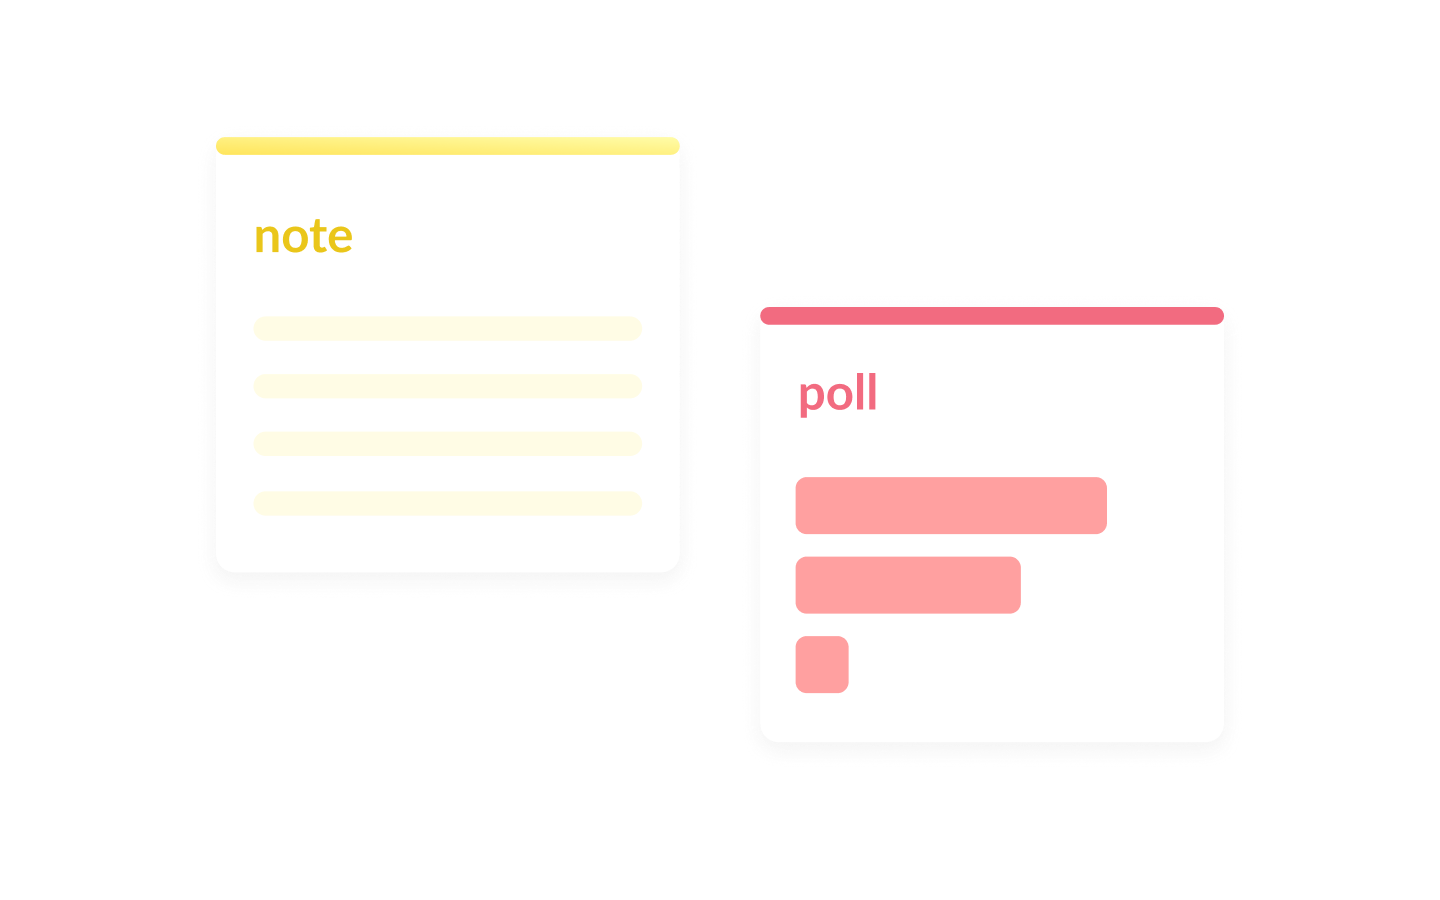 poll-and-notes-card